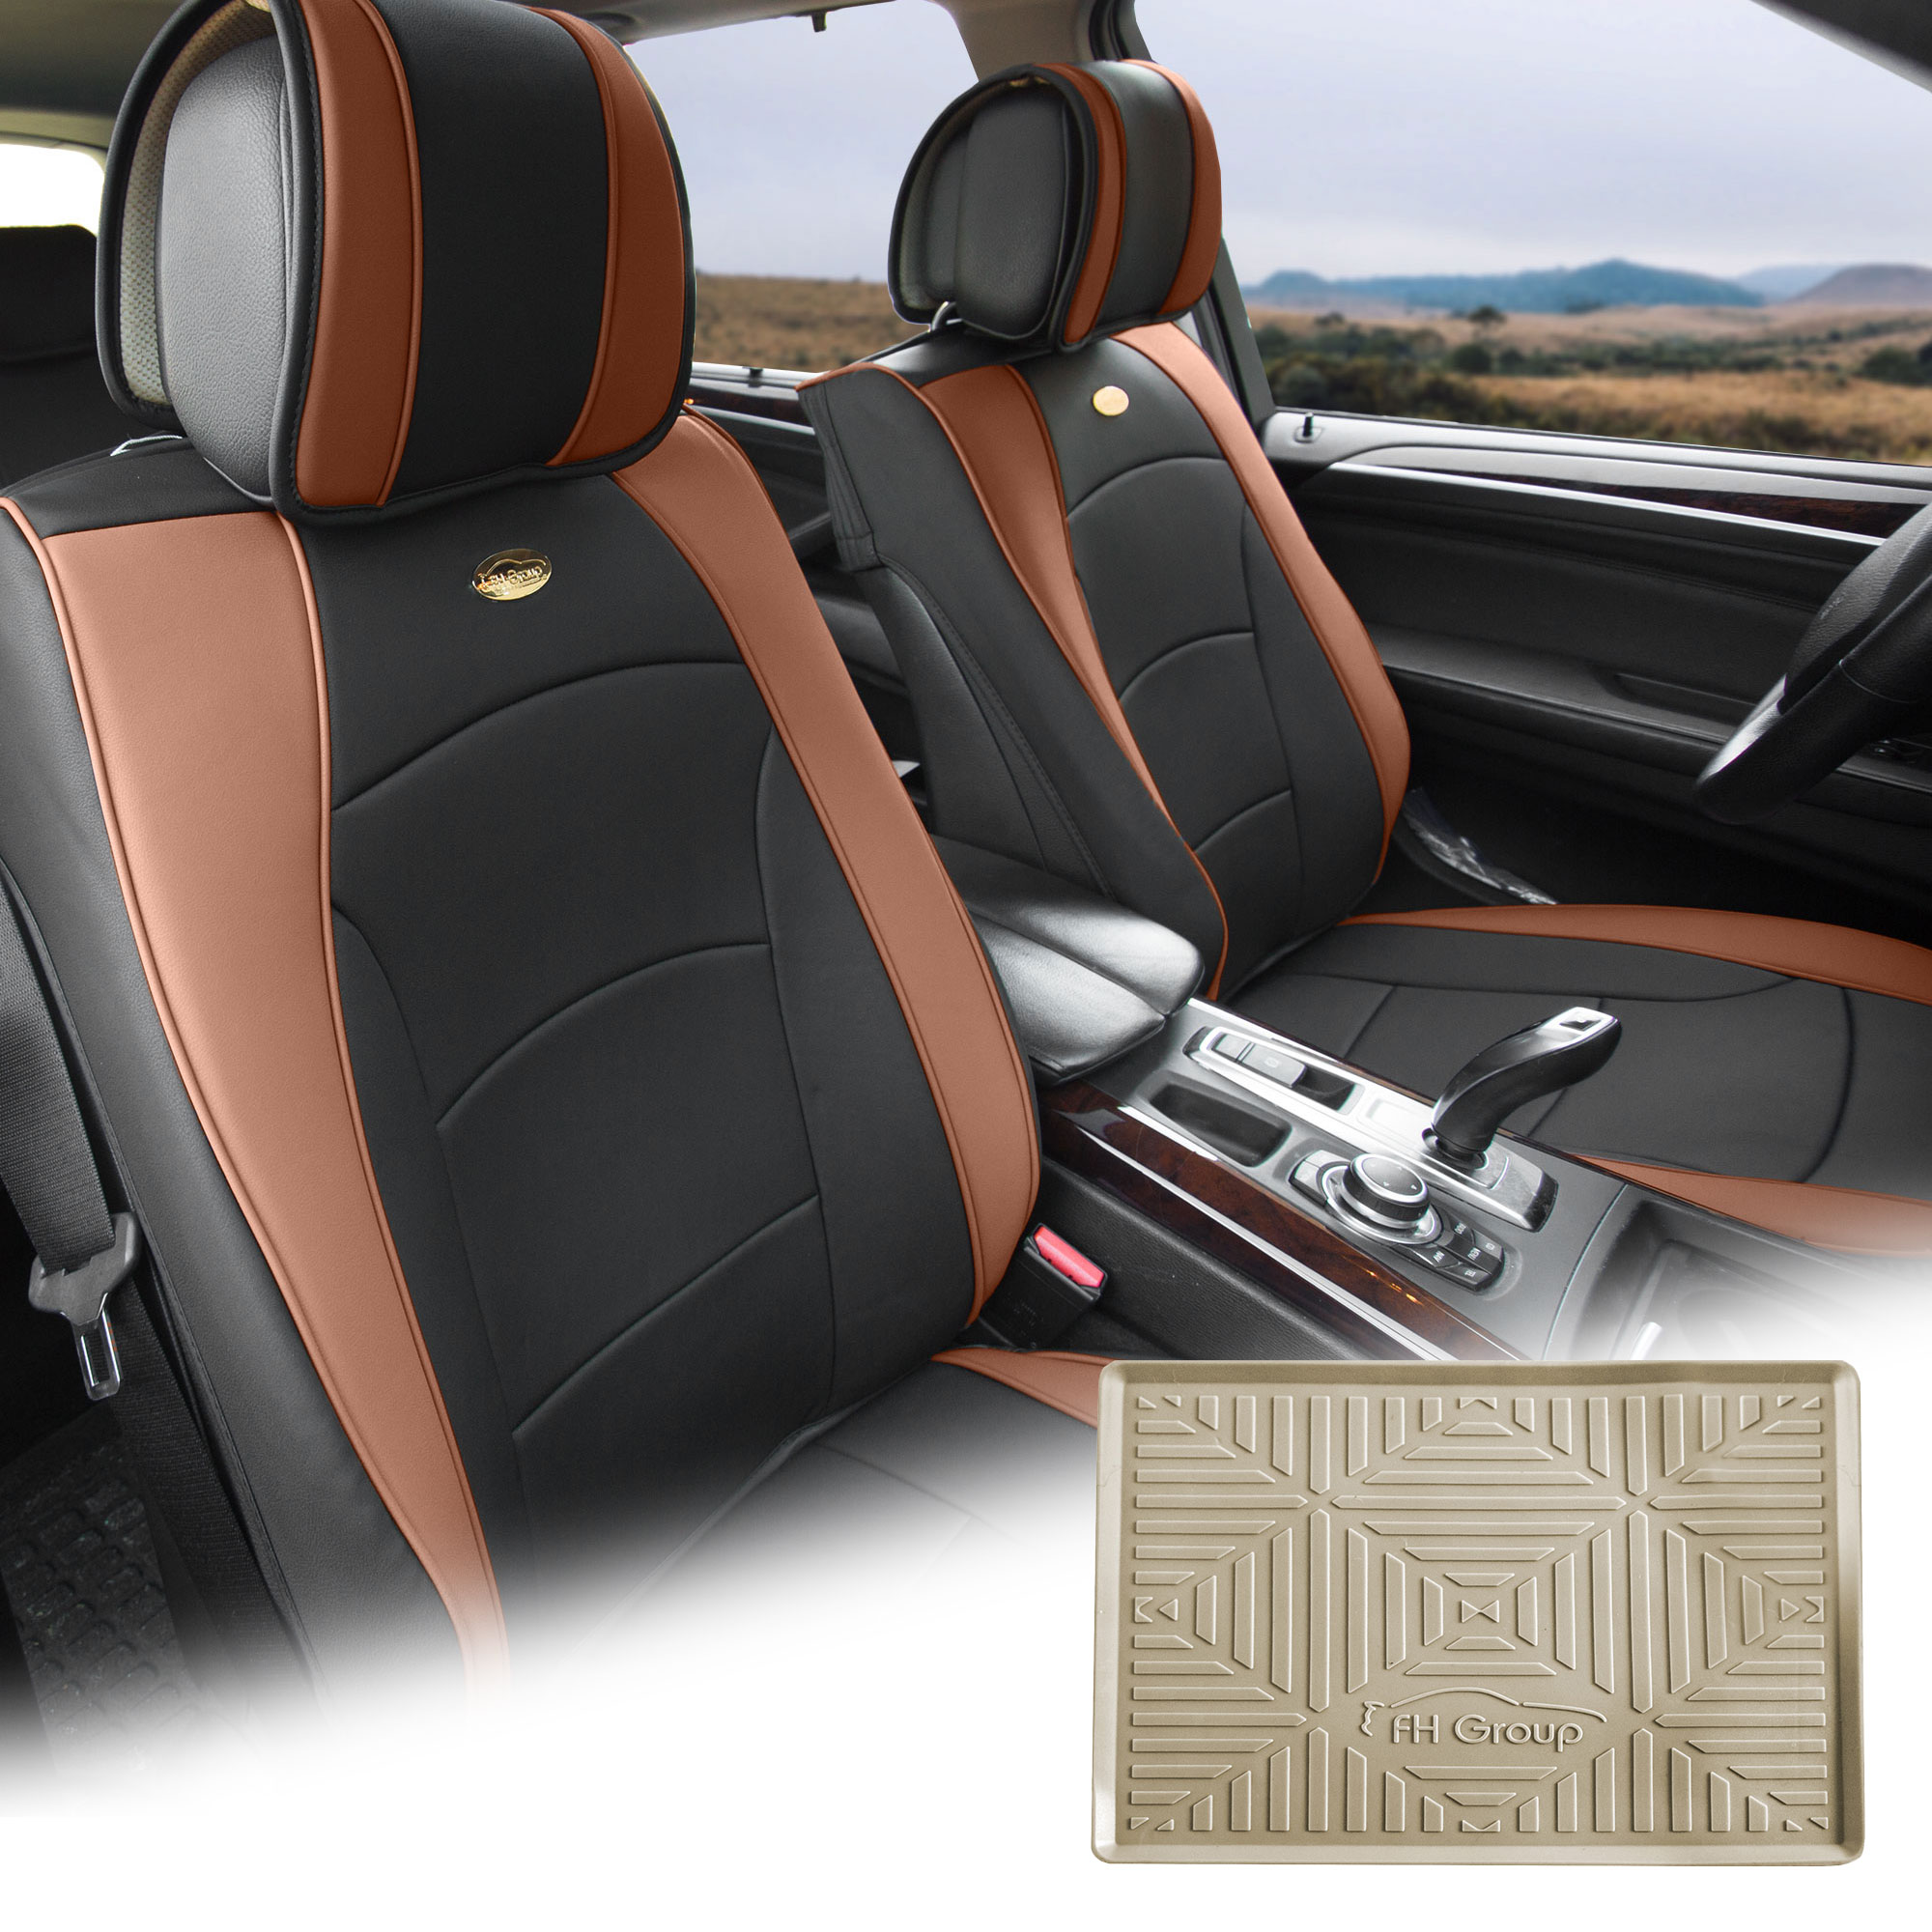 FH Group Brown Black PU Leather Front Bucket Seat Cushion Covers for Auto Car SUV Truck Van with Beige Dash Mat Combo